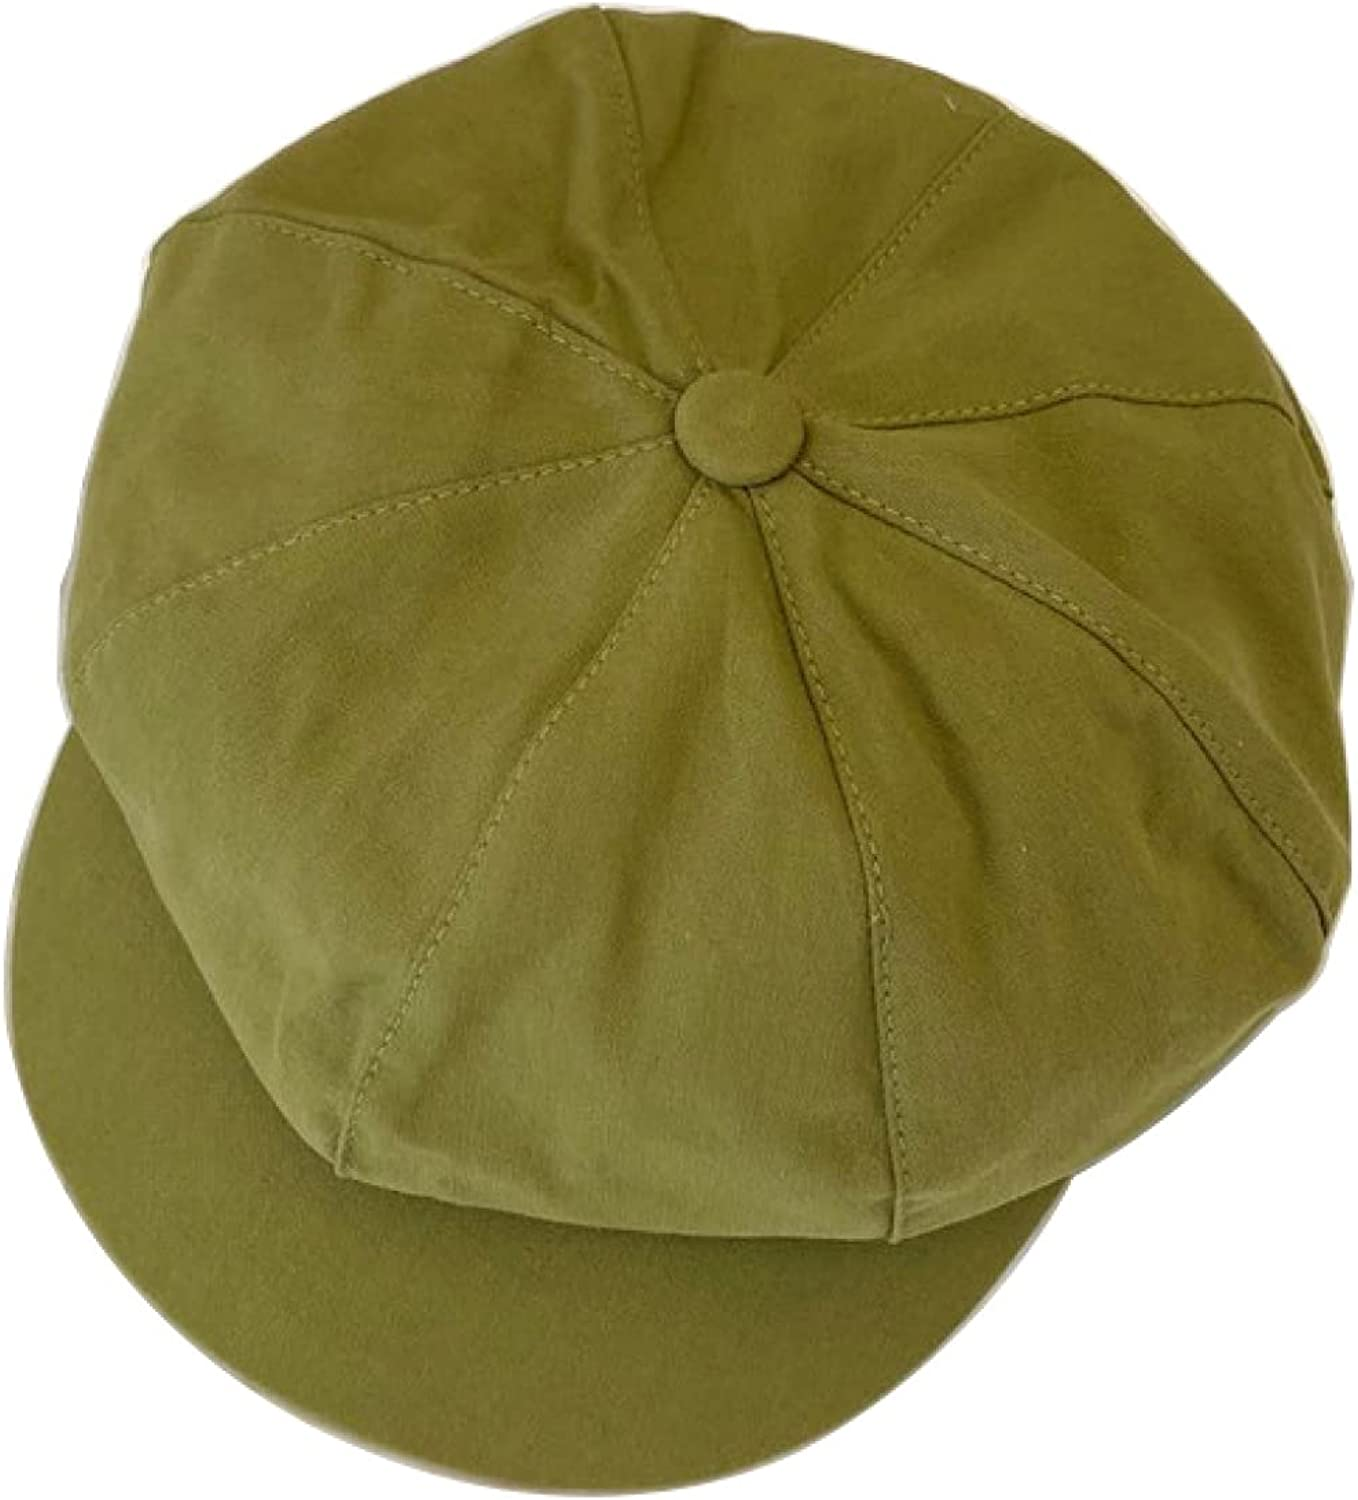 Women's Mariner Style Berets Solid Color Newsboy Cap with Comfort Elastic Back Baker Boy Cabbie Hat Painter